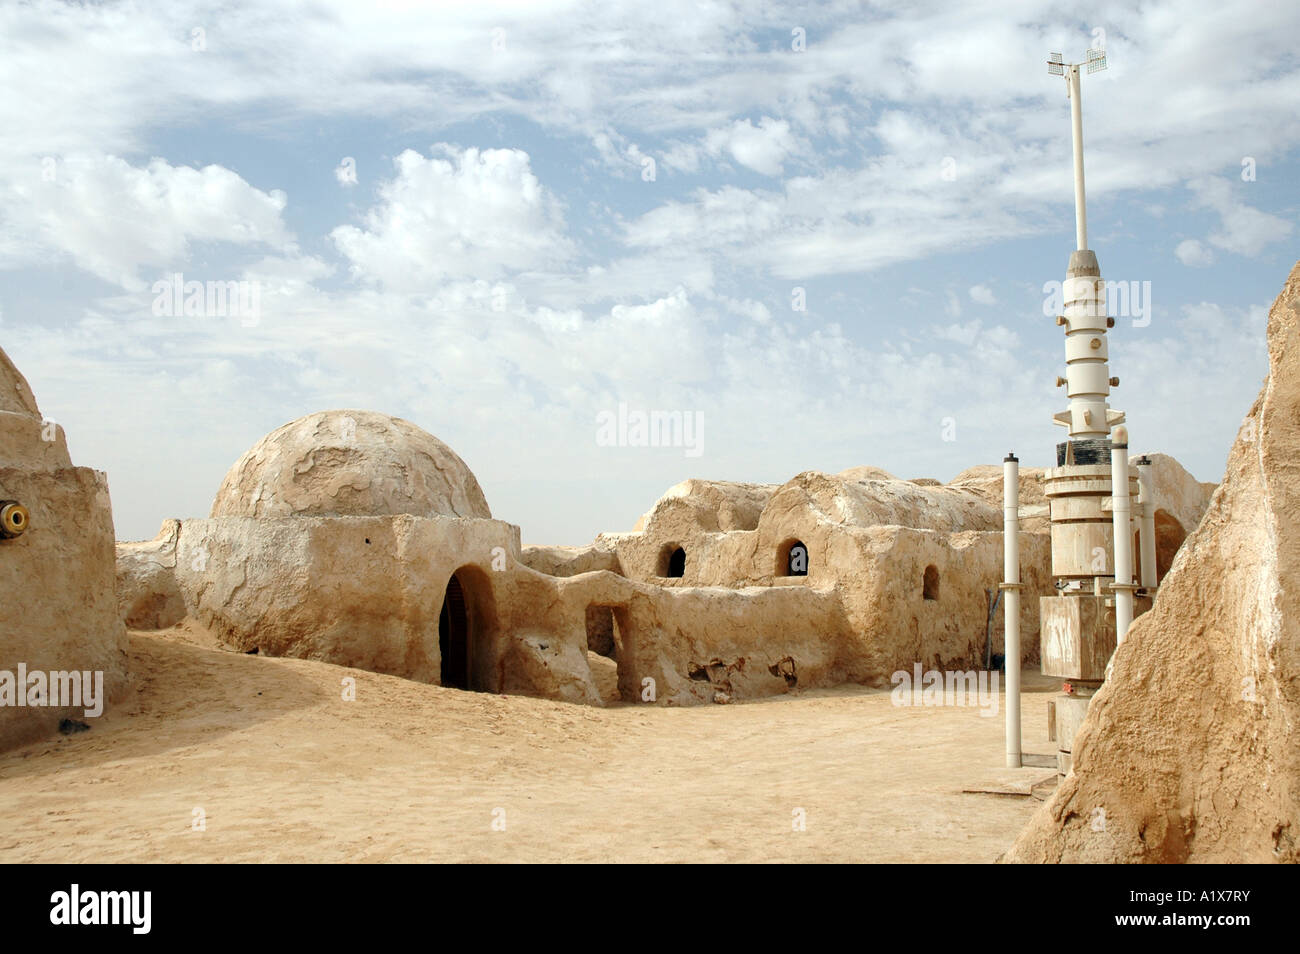 Demeure de George Lucas Star Wars film situé sur le Sahara en Tunisie Photo Stock